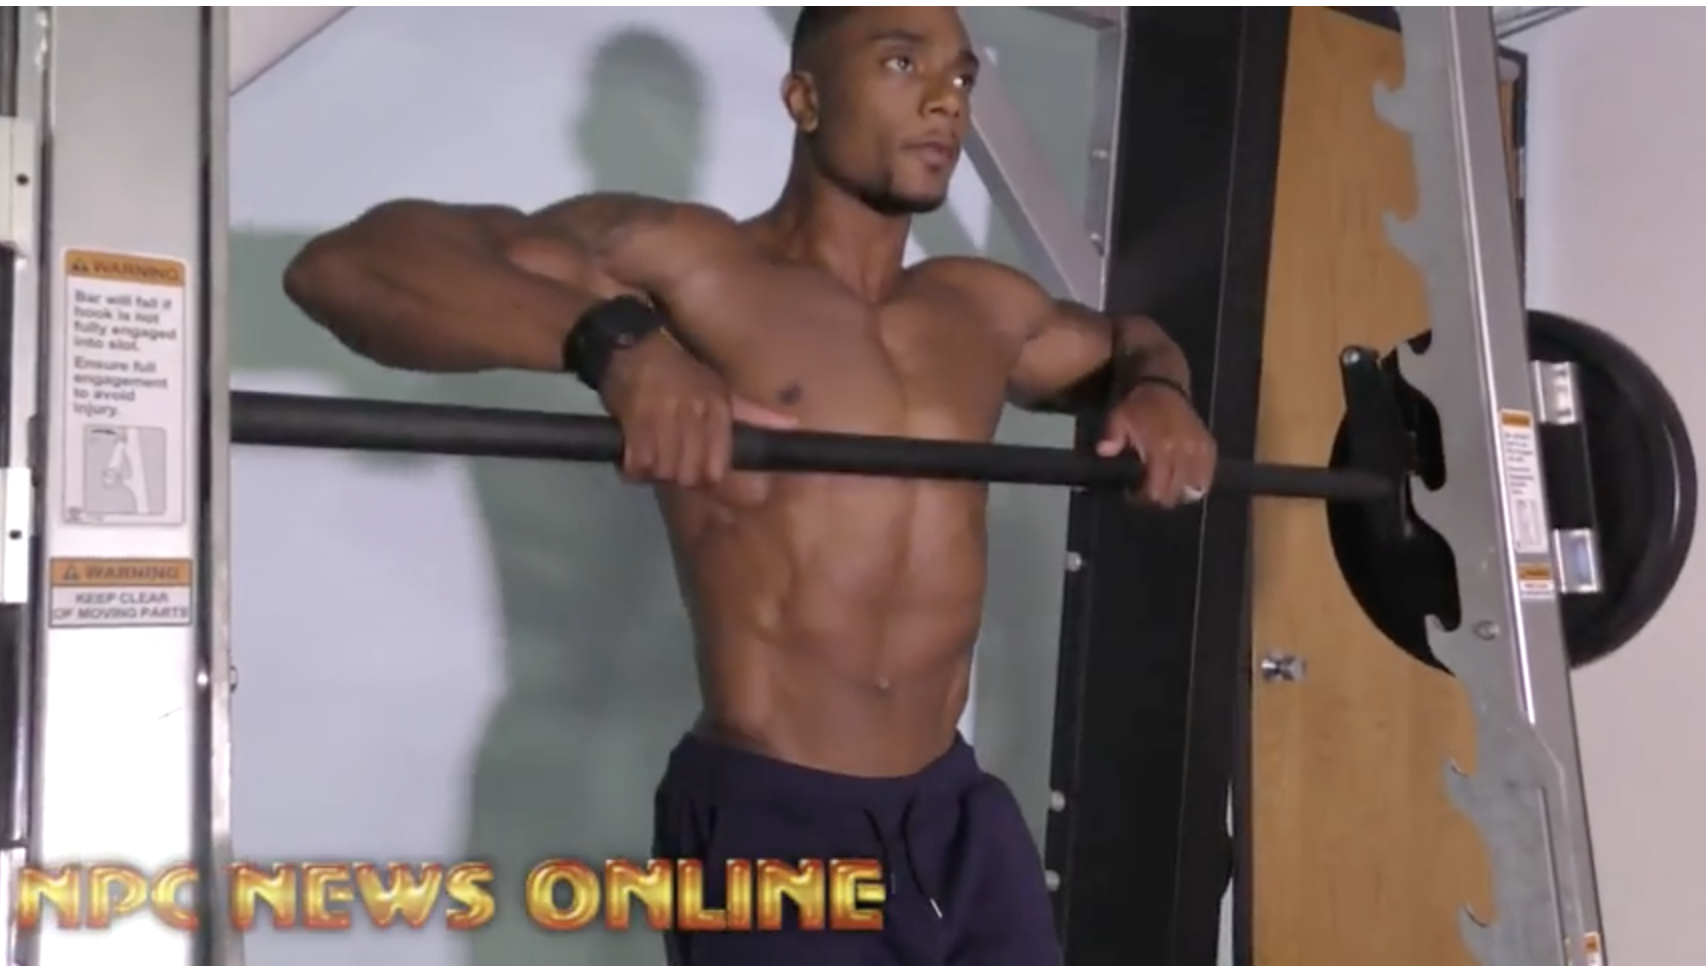 2017 NPC Florida State Men's Physique Champion Lameen Schand Shares Some Of His Techniques Working With BPhysique in Orlando, Florida